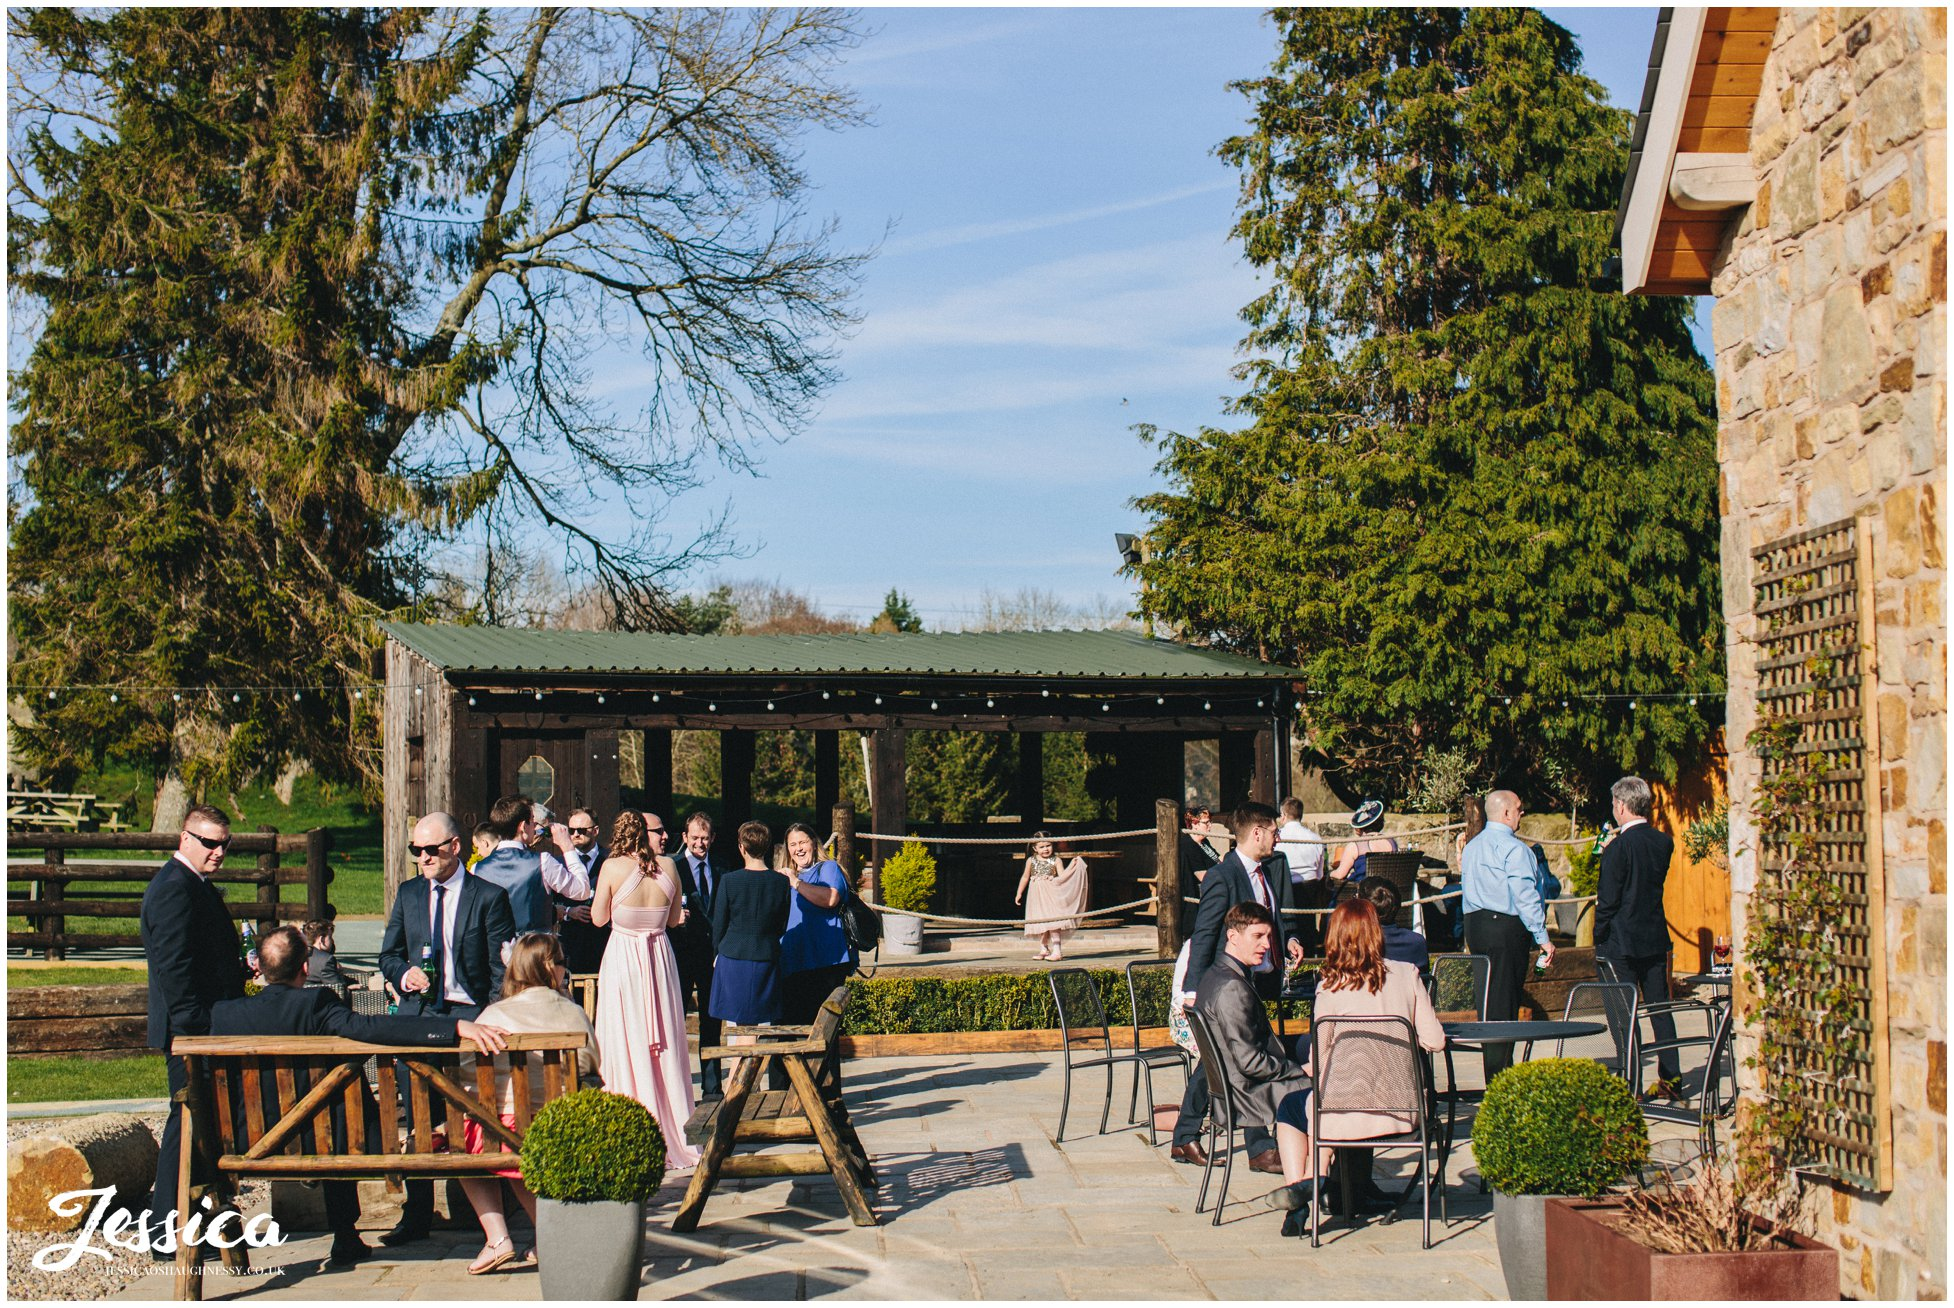 guests stood in the sunshine at the wedding reception in north wales